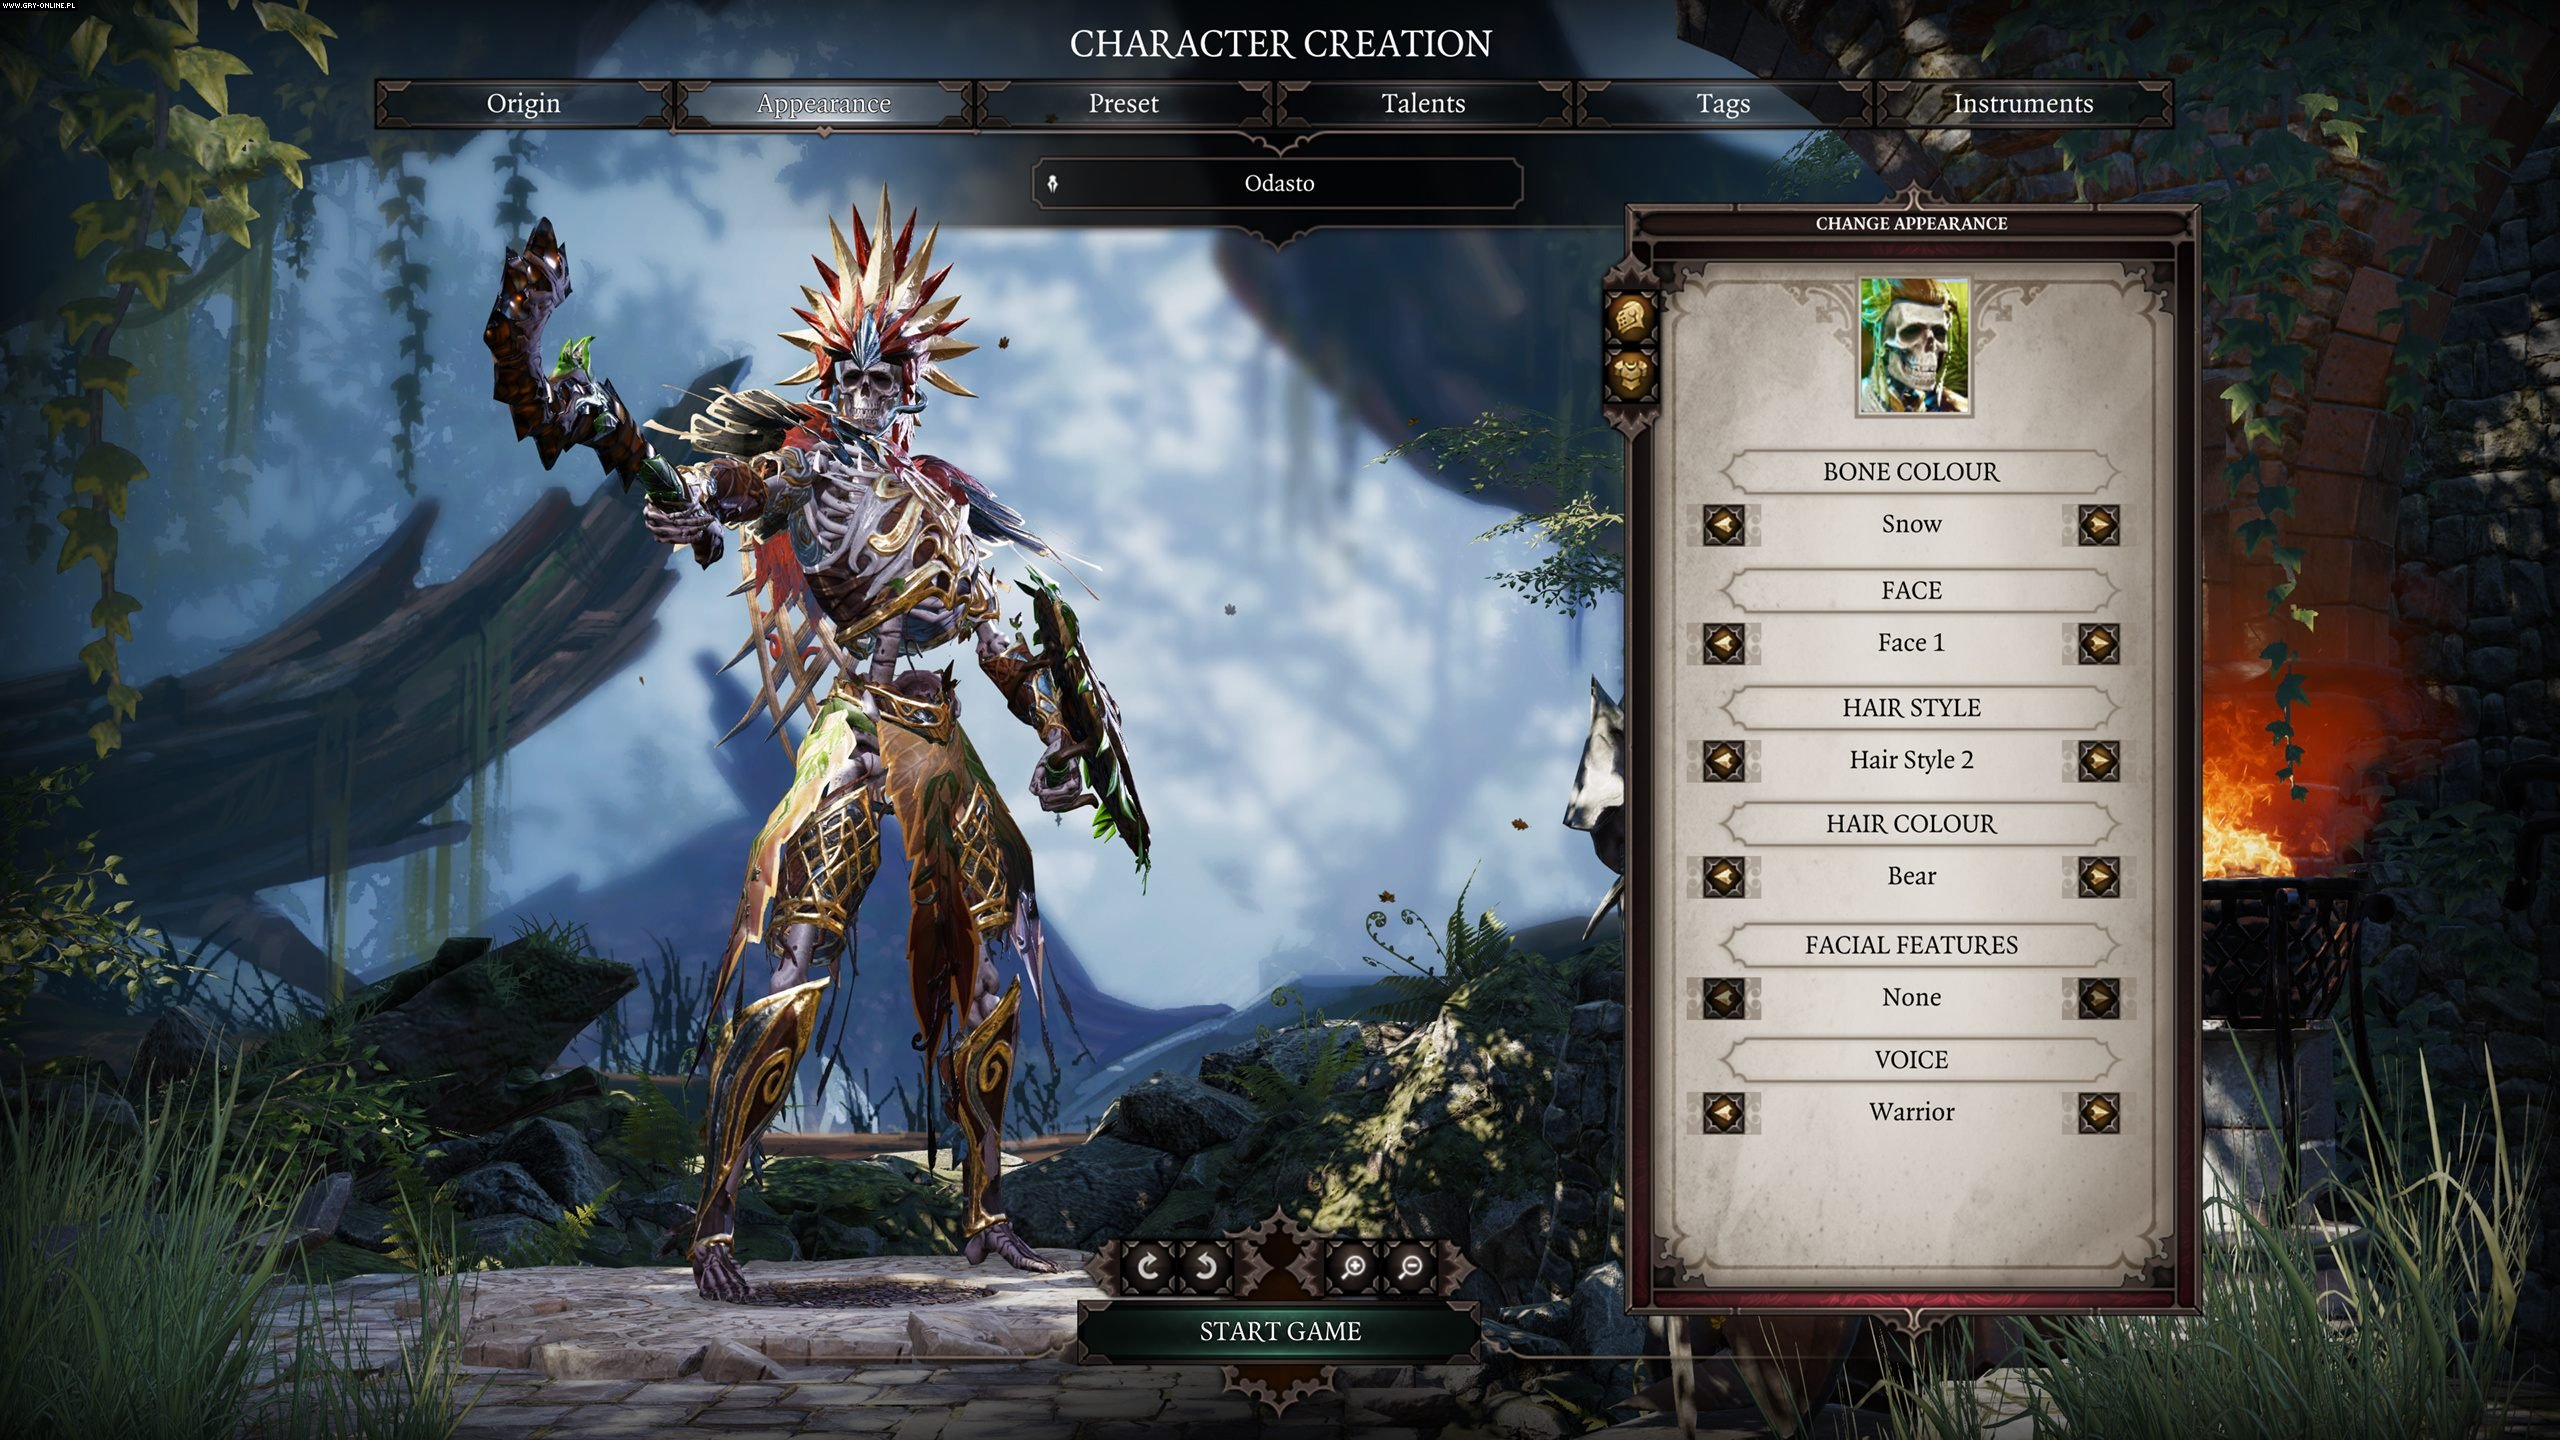 Divinity: Original Sin II - Definitive Edition PC Games Image 106/304, Larian Studios